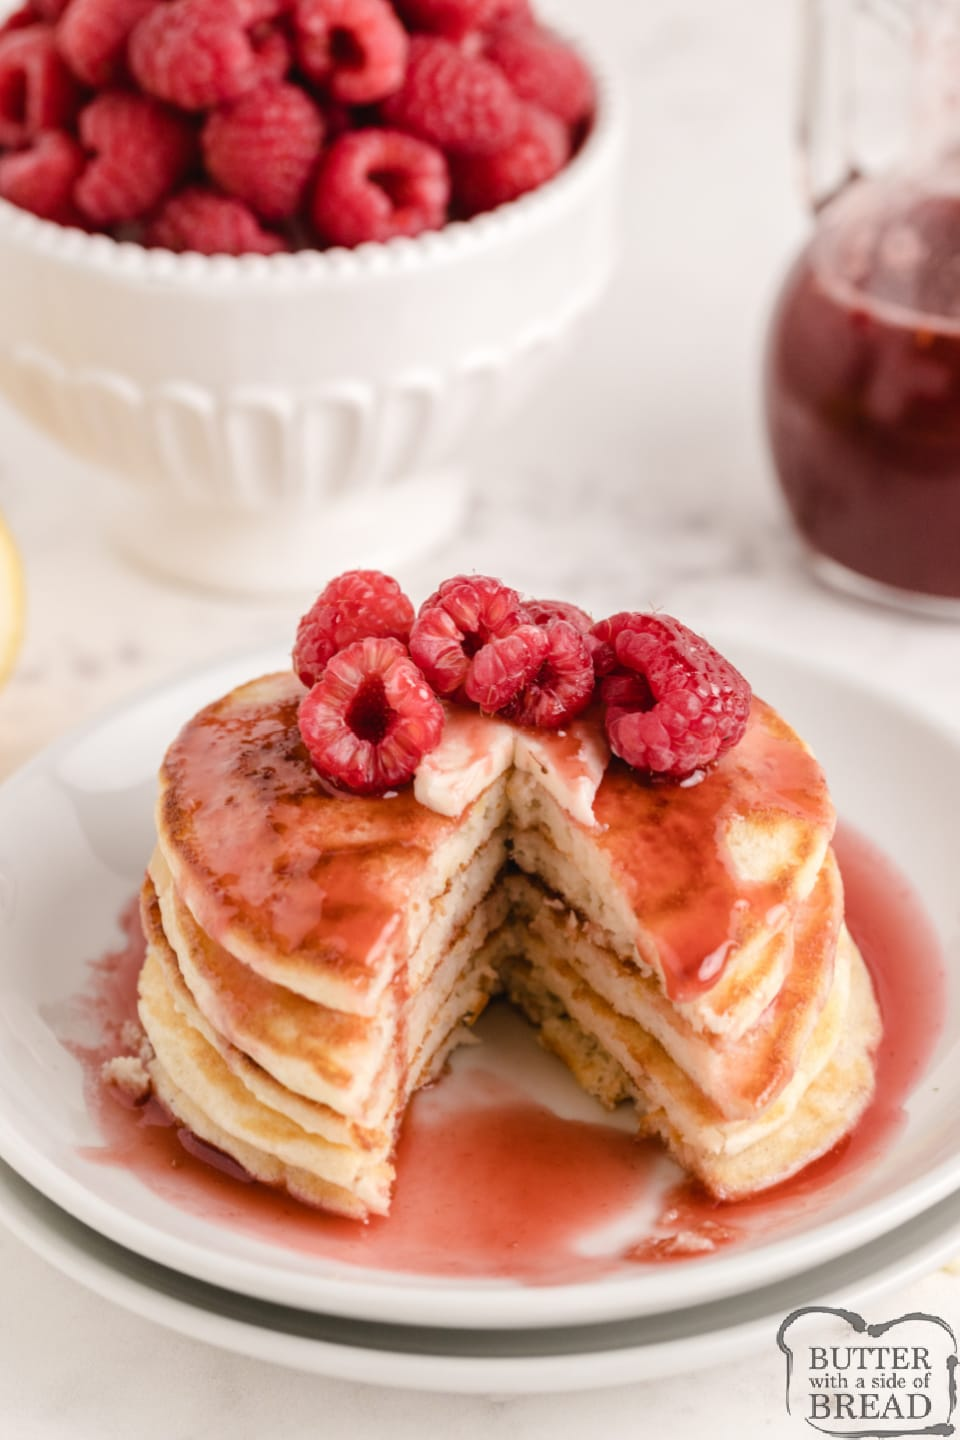 Lemon Pancakes with Raspberry Syrup are light and fluffy with a subtle lemon flavor. Top with a simple two-ingredient raspberry syrup made with frozen raspberries for a delicious pancake breakfast.